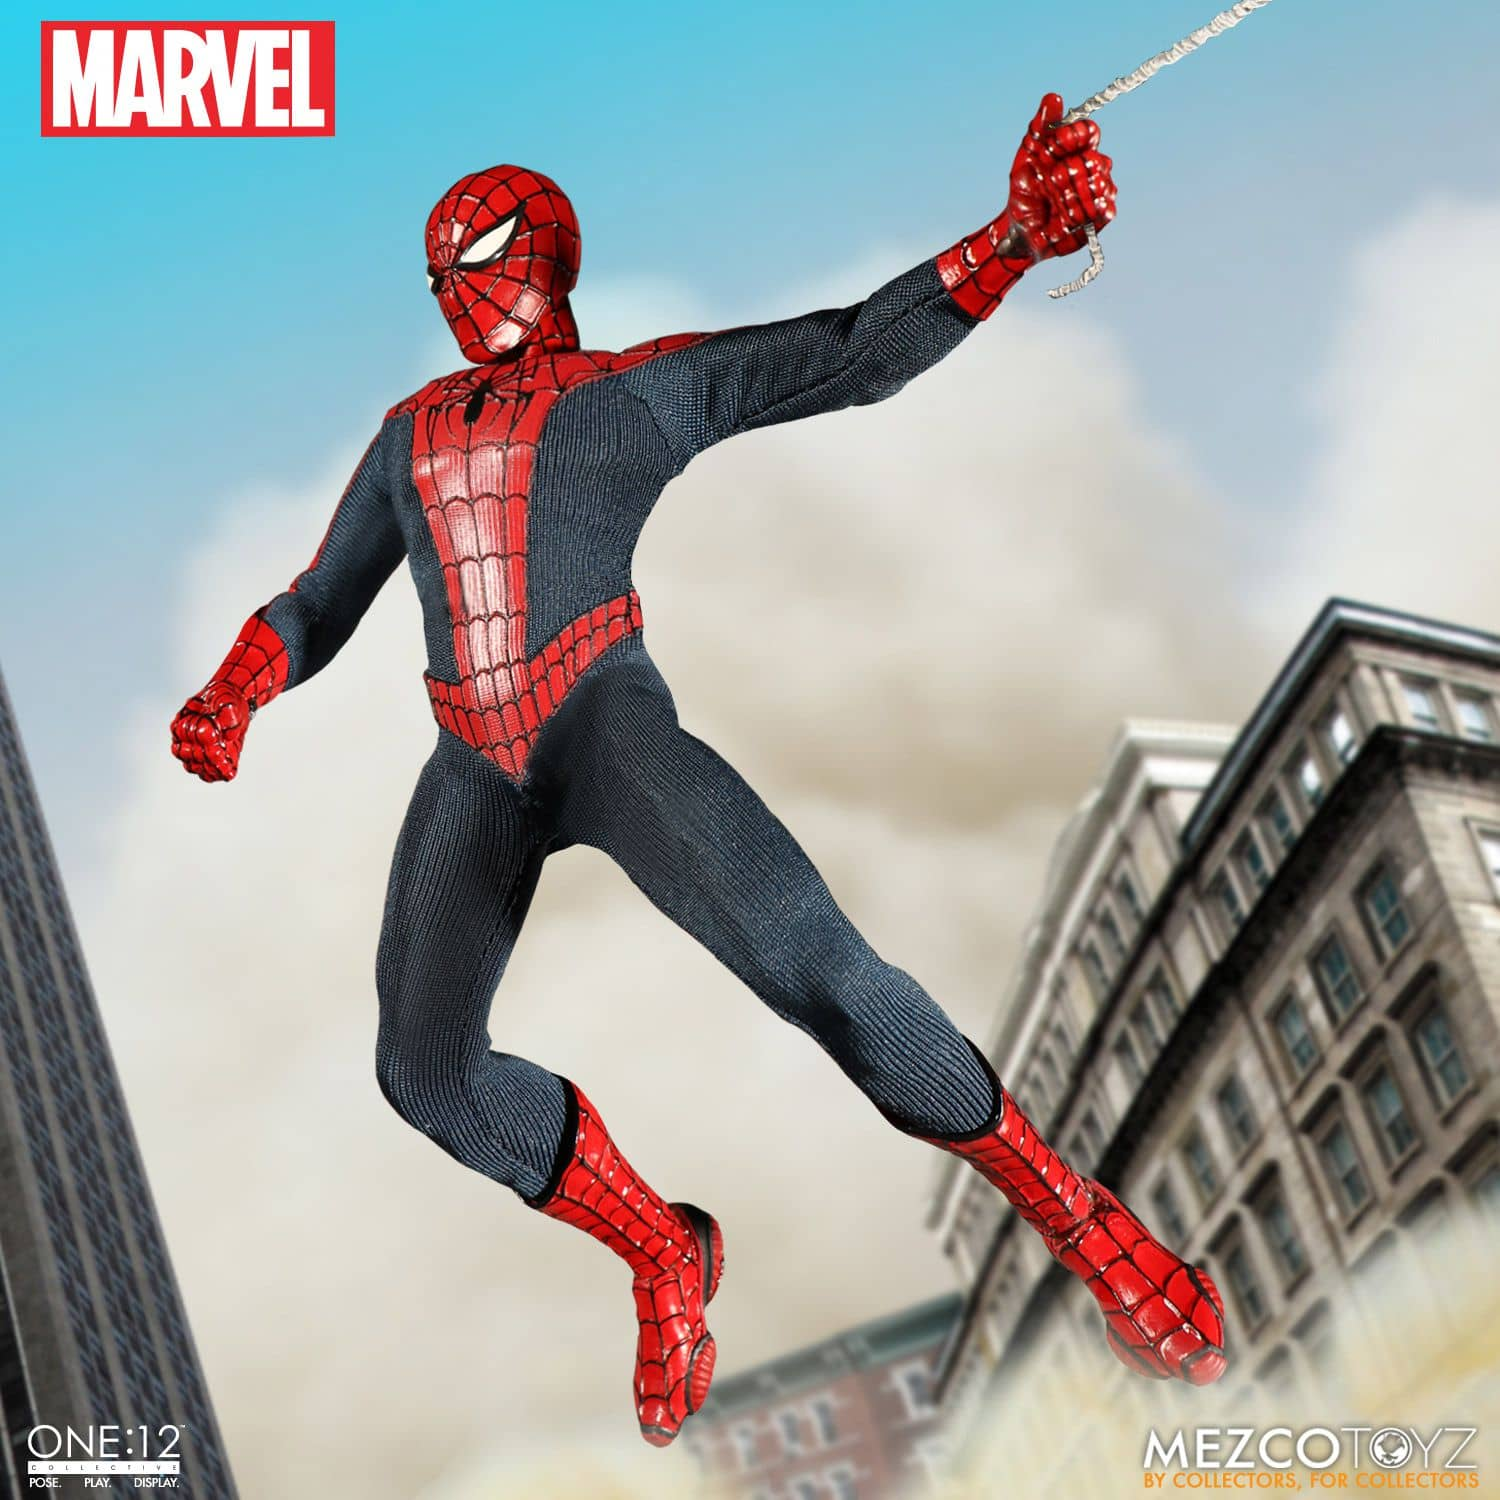 SPIDER-MAN FIGURA 24 CM MARVEL THE ONE:12 COLLECTIVE